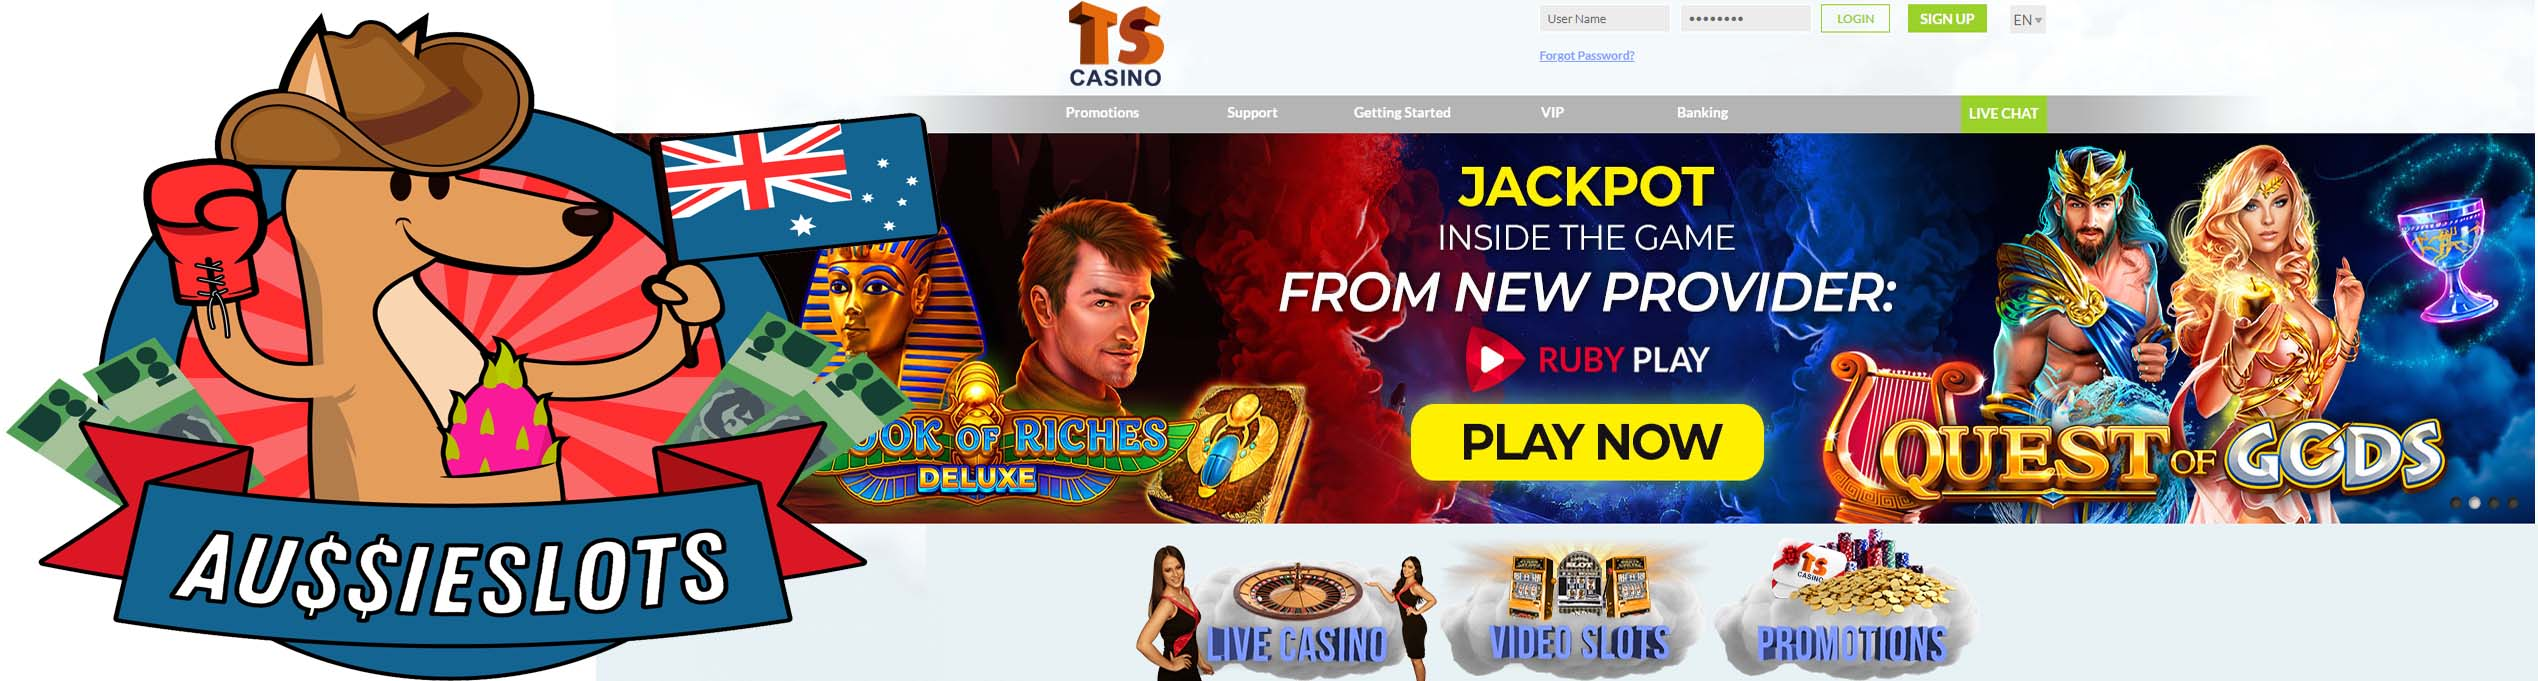 Play Our New Featured Casino